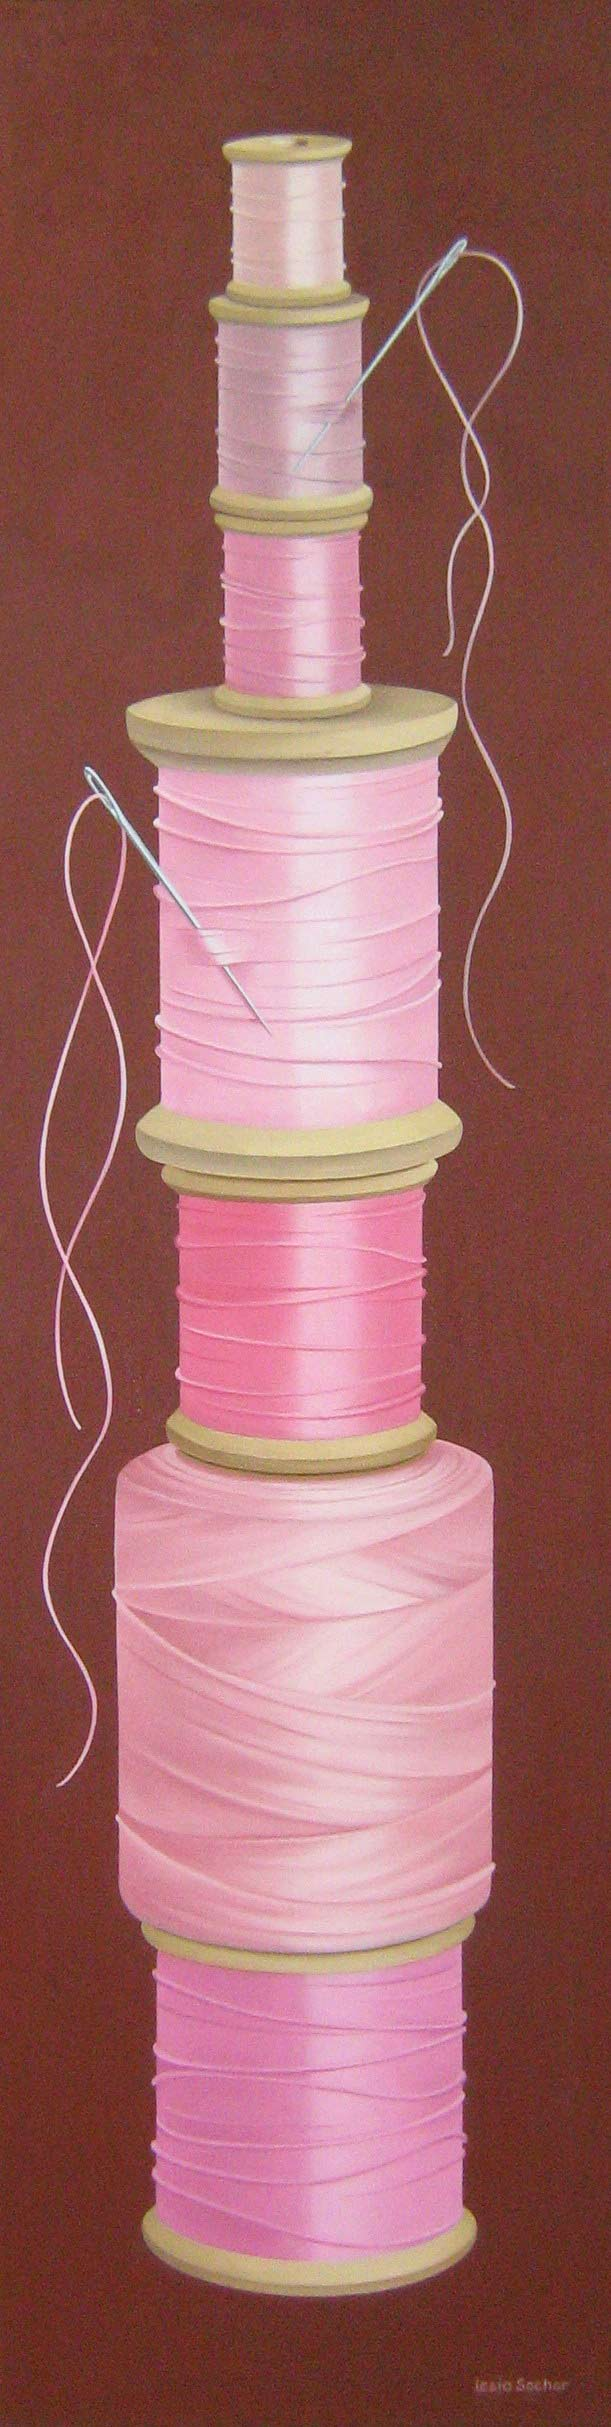 "Code Pink,  2011, oil on canvas, 16"" x 60"""